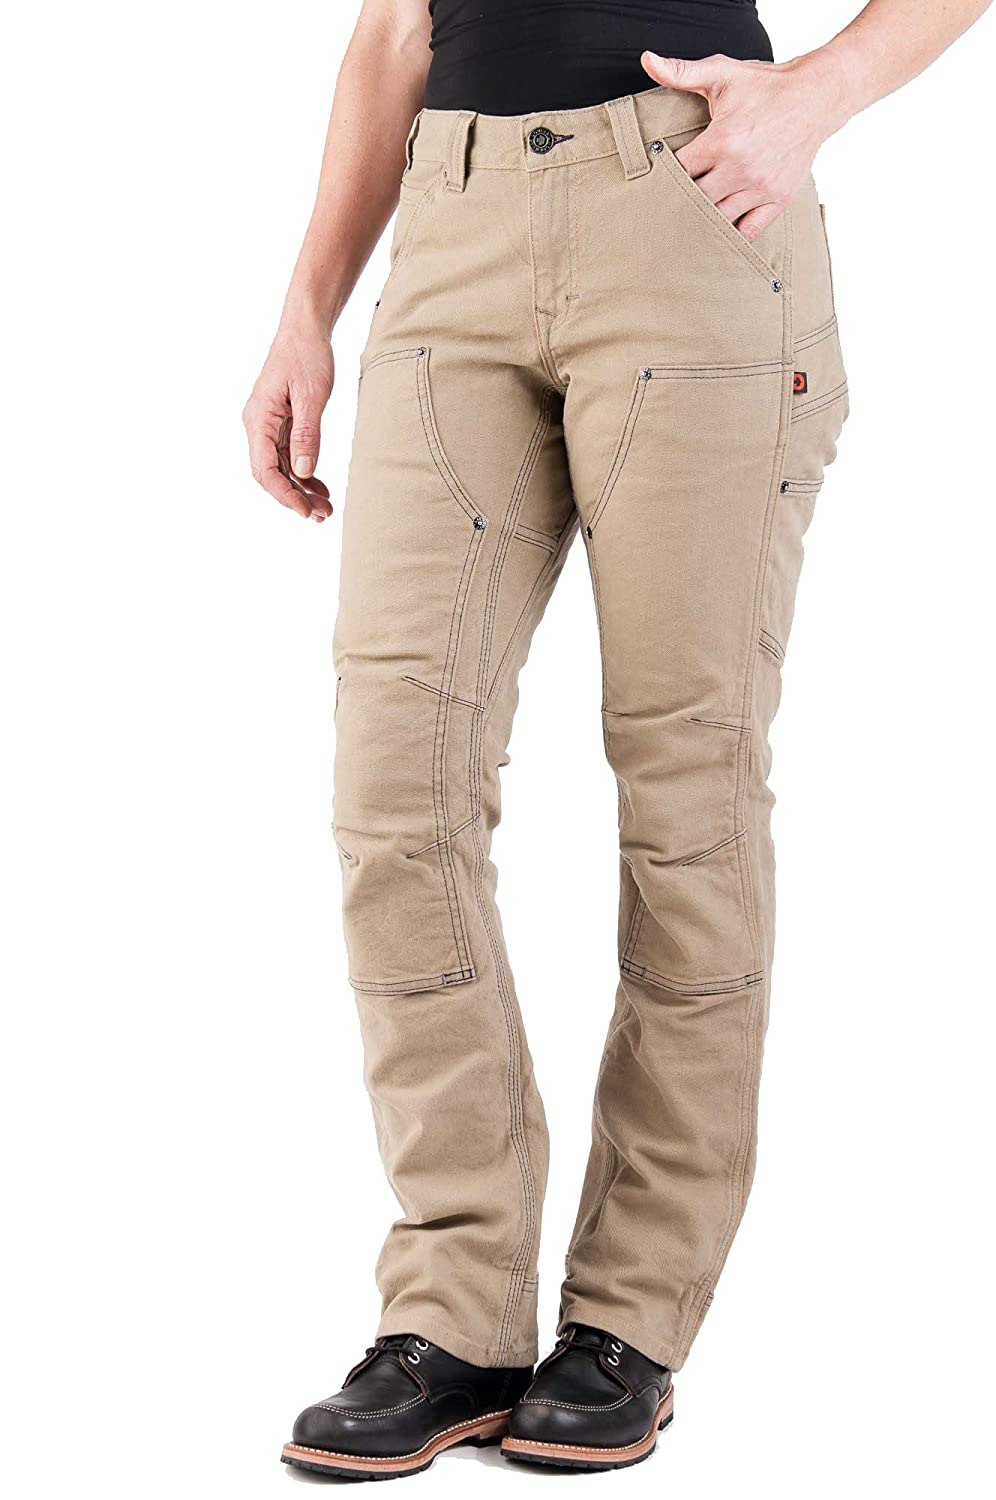 Natural Canvas Dovetail Workwear Pants for Women  Britt Utility Straight Fit Stretch Carpenter Pant  Available in Denim or Canvas